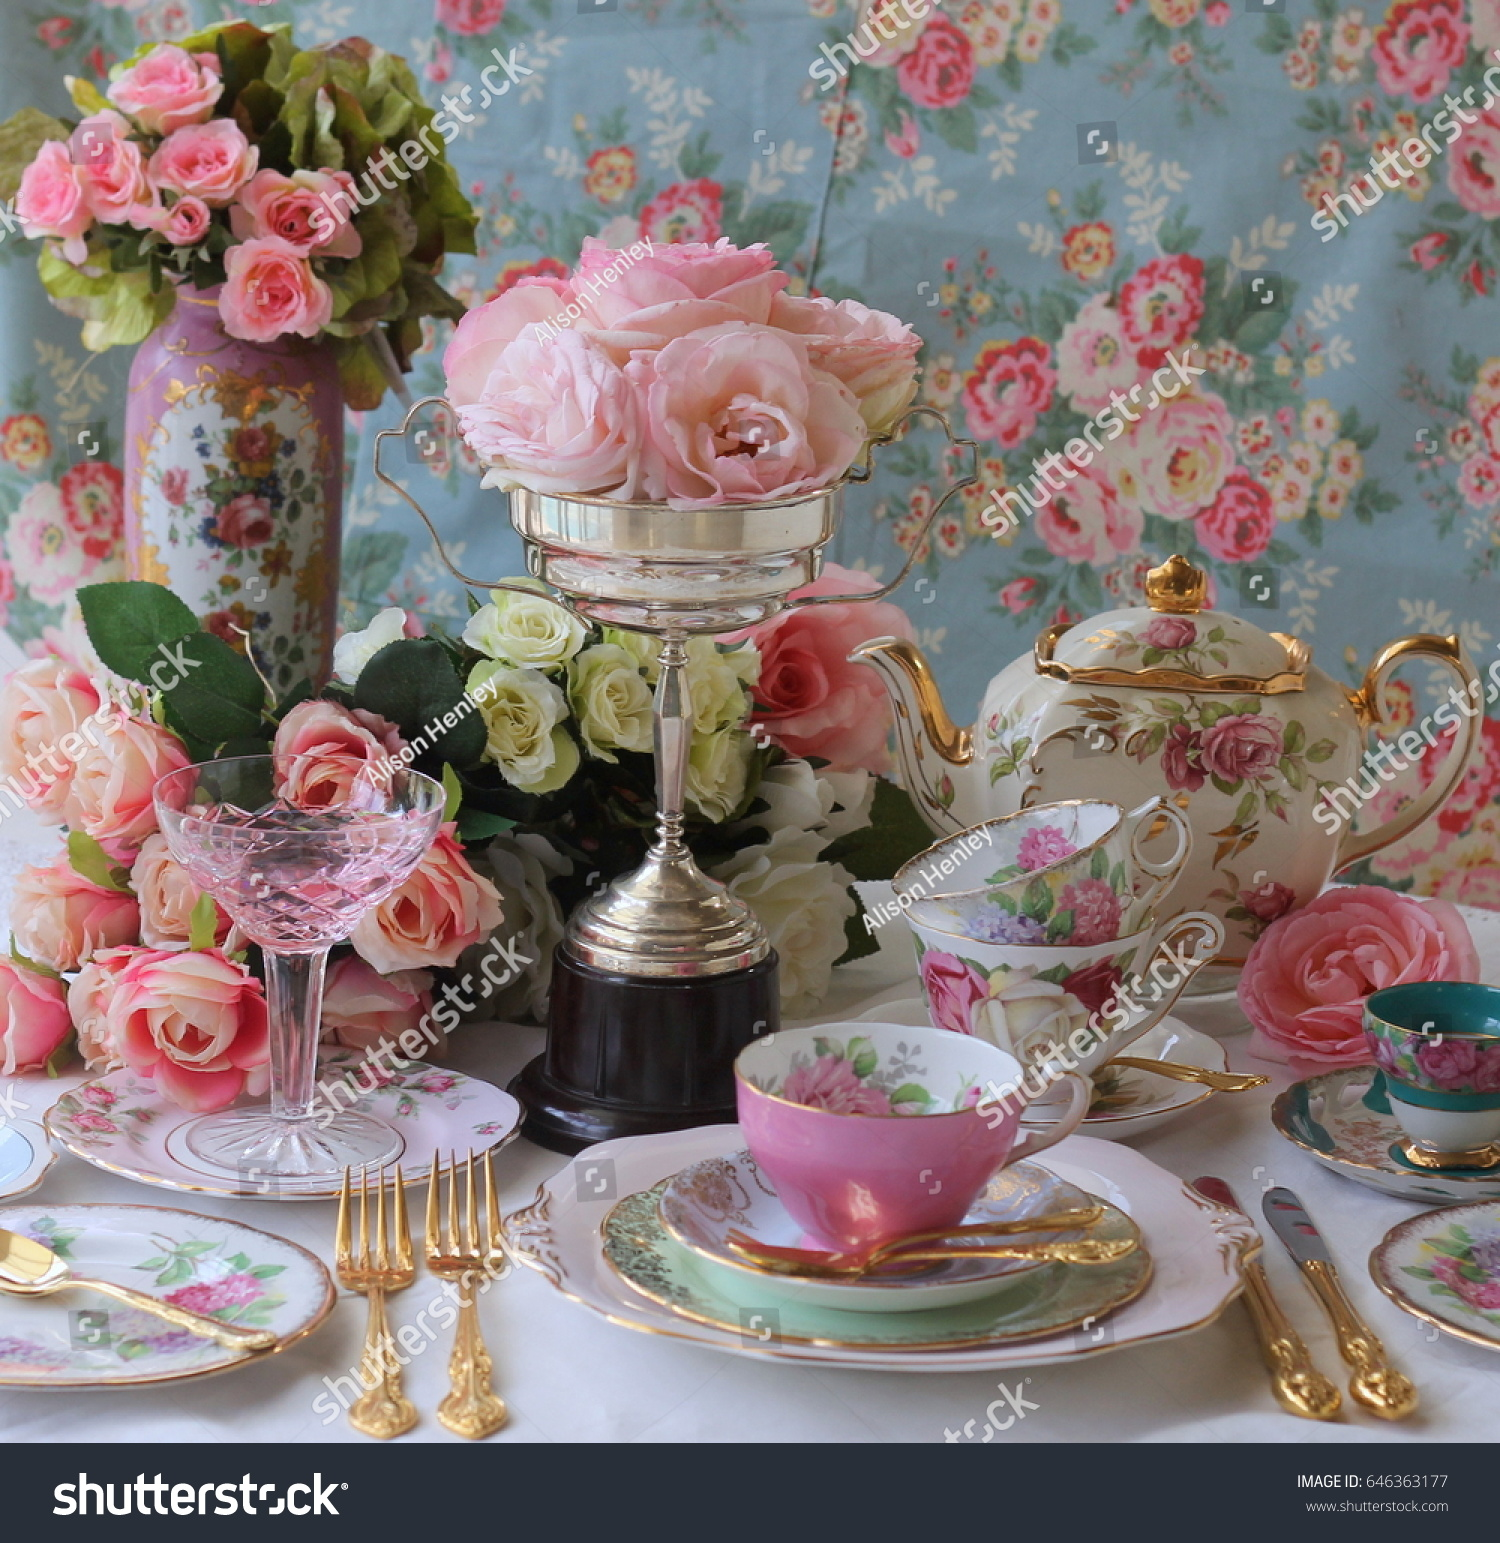 Vintage Tea Party Cups Teapots Stock Photo Edit Now 646363177 Story Flower Shabby Rose 1 And Gold Cutlery Flatware With Silver Trophy